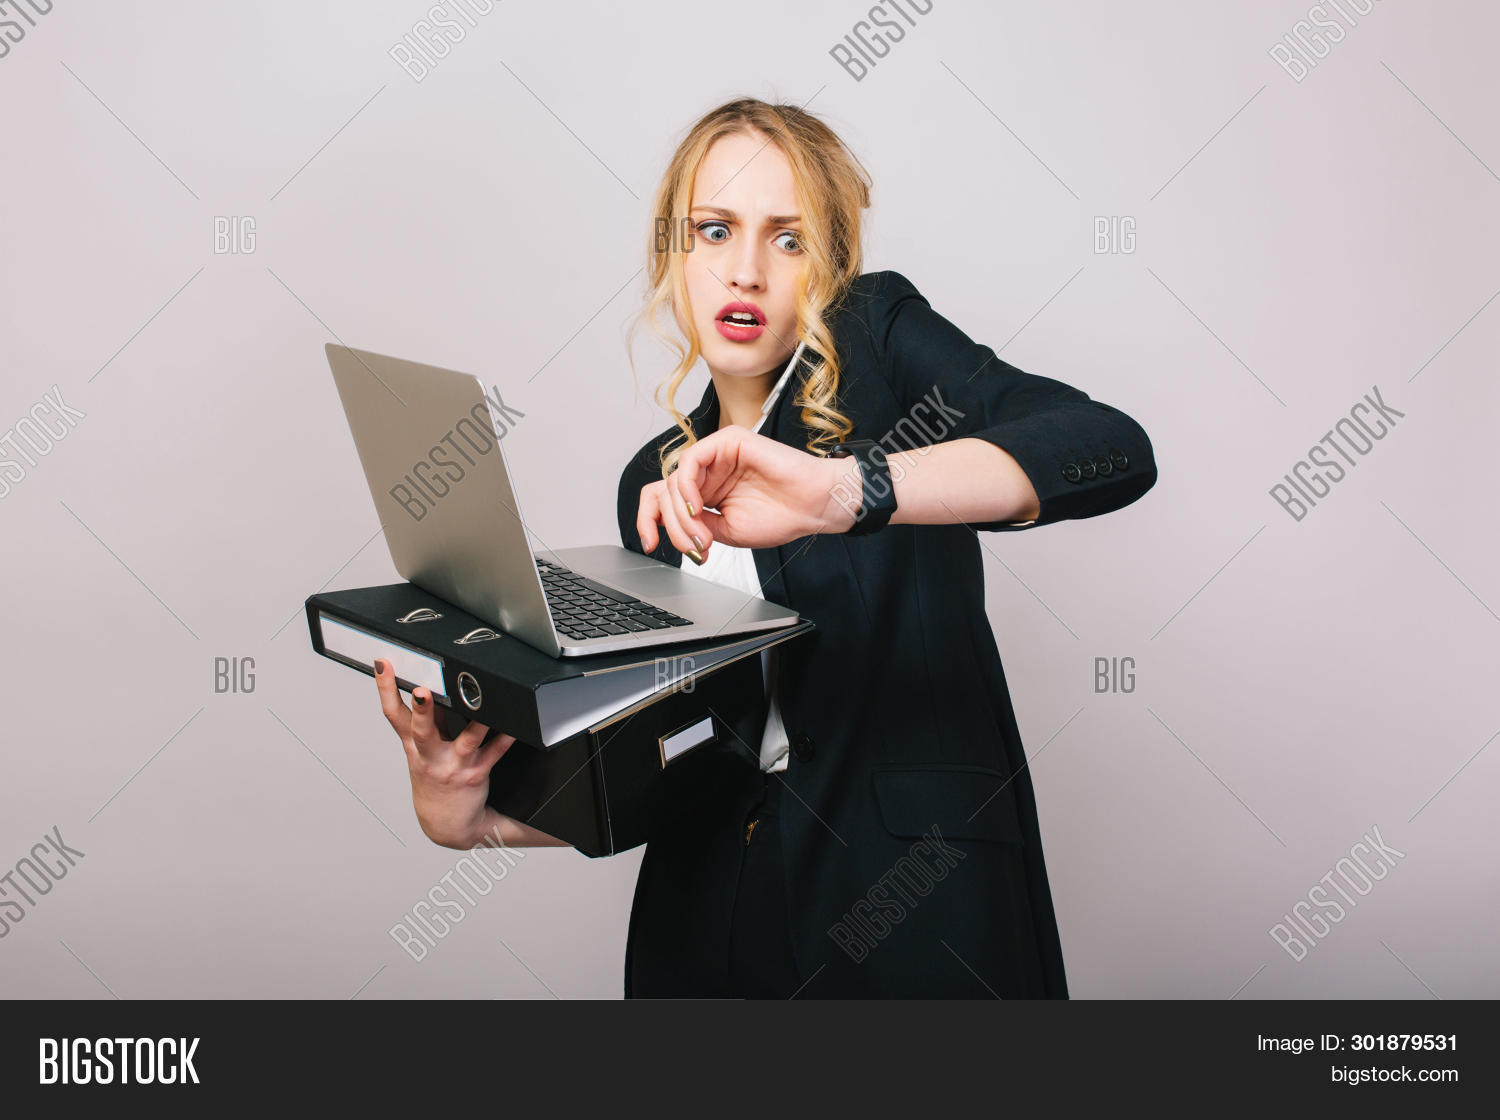 adult,agent,astonished,attractive,background,beautiful,box,business,businessperson,businesswoman,busy,career,confident,corporate,documents,elegant,employment,executive,face,female,folder,formal,internet,isolate,isolated,job,lady,laptop,late,manager,modern,office,phone,portrait,pretty,problem,profession,secretary,standing,studio,successful,suit,talk,time,watch,white,woman,work,worker,young